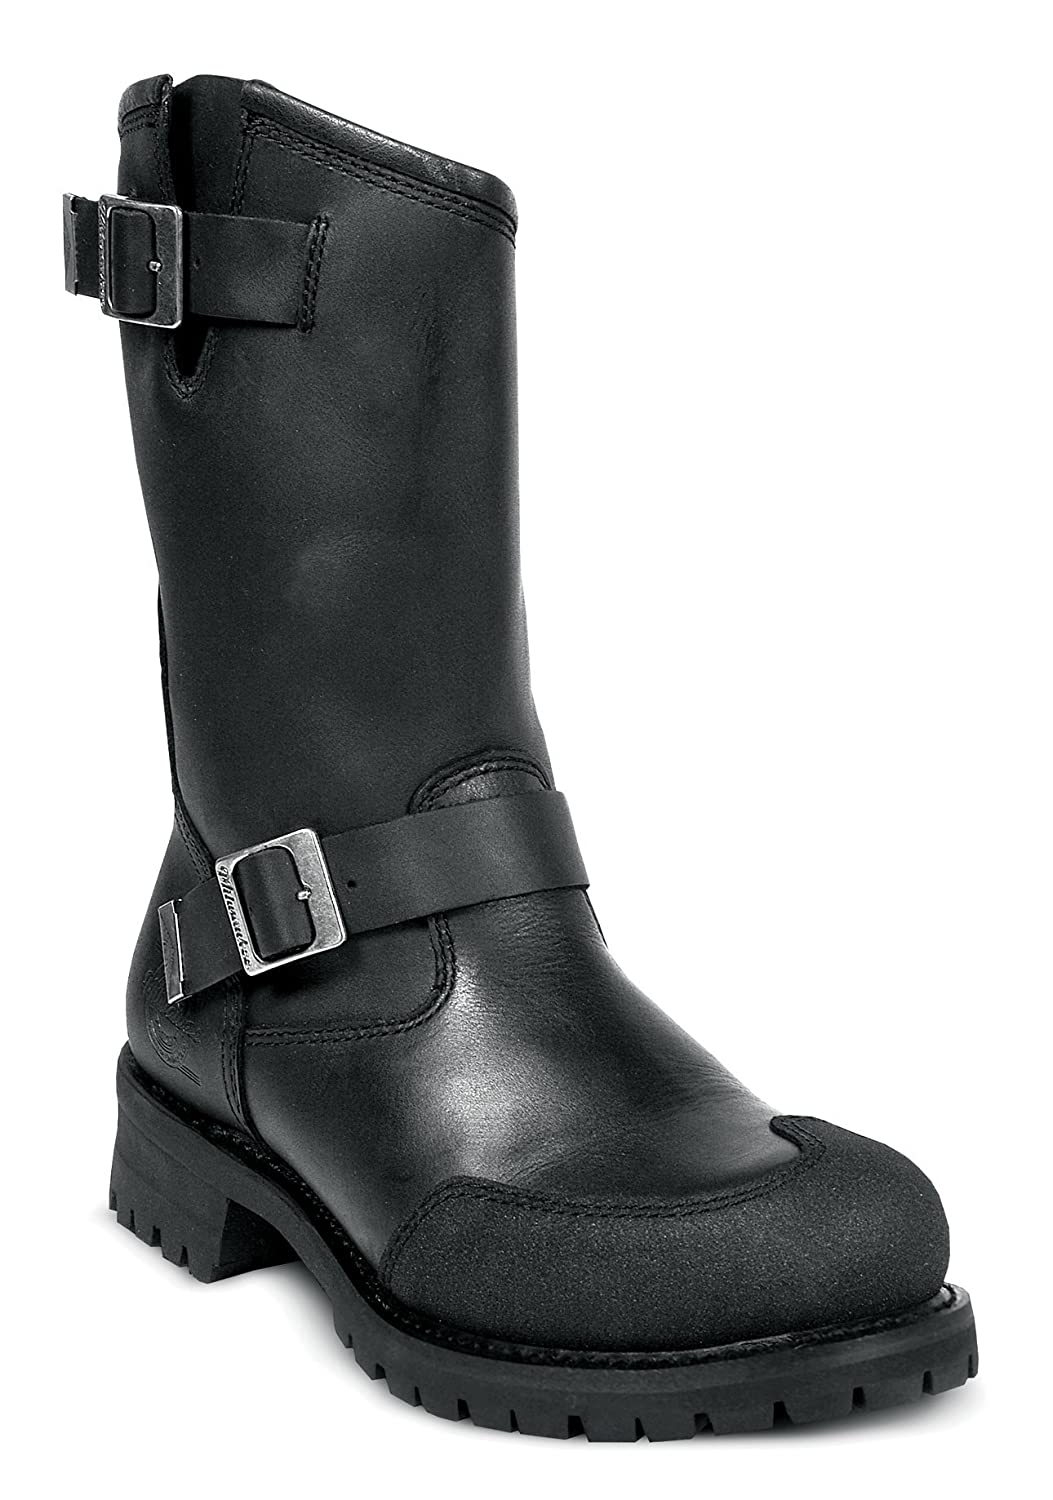 Black, Size 13D Milwaukee Motorcycle Clothing Company Drag Engineer Leather Mens Motorcycle Boots